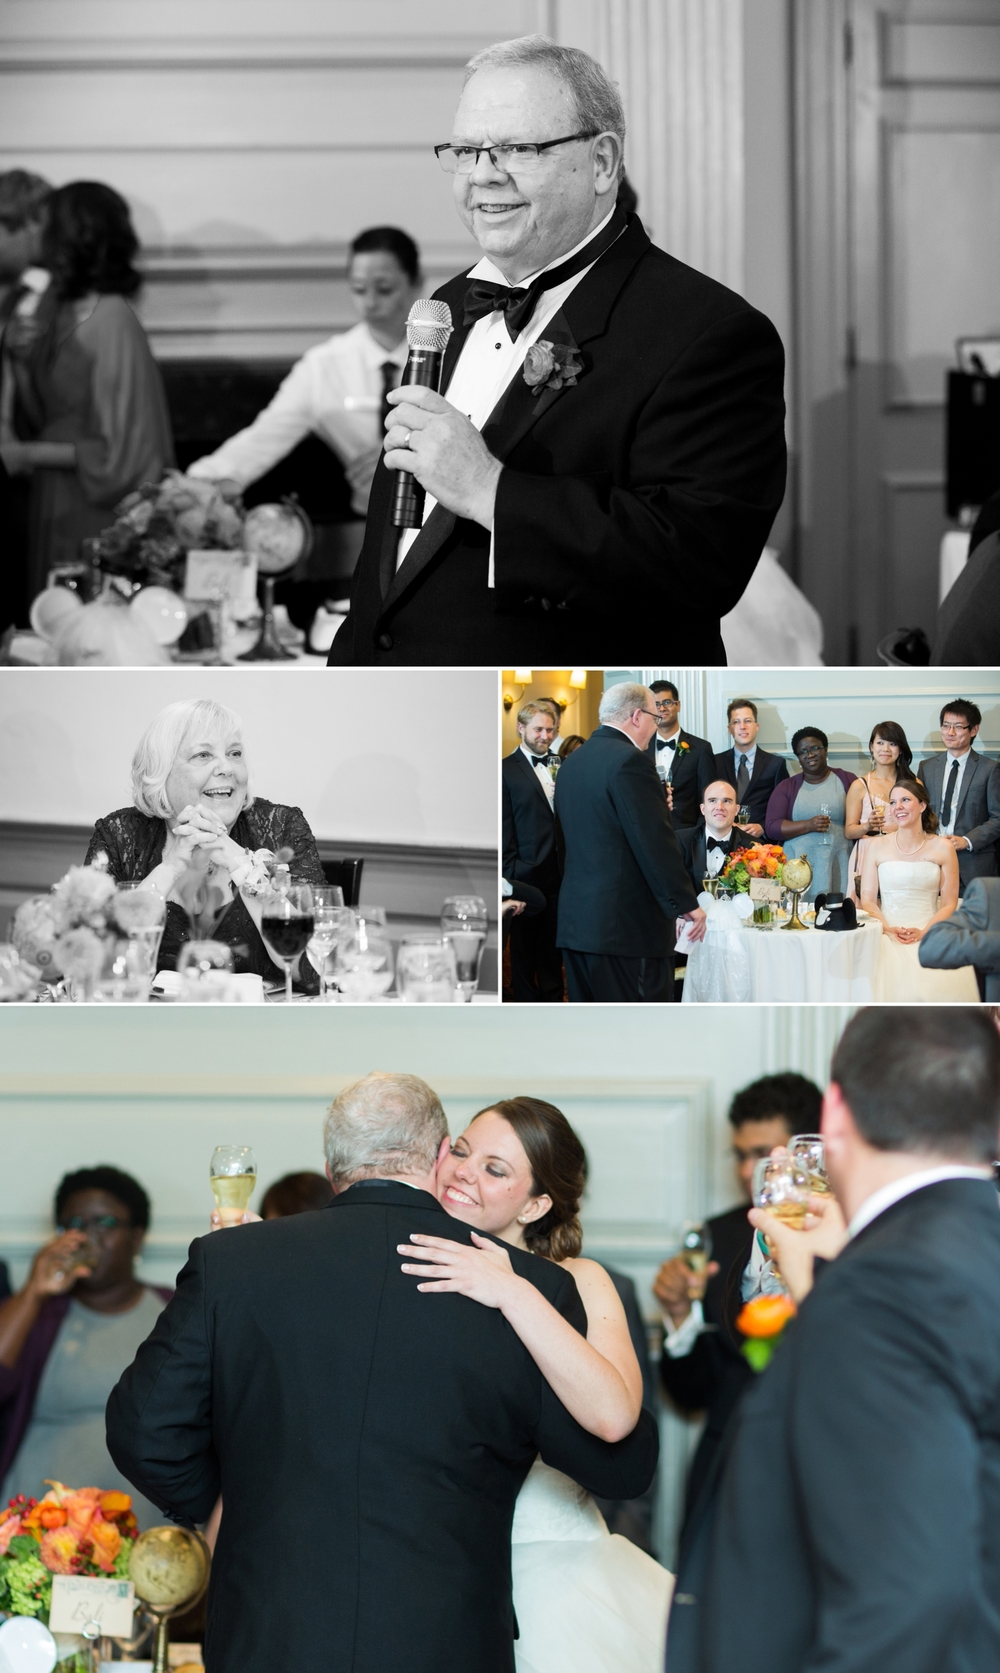 HarvardFacultyClubWedding_BostonMAFallWedding_MichelleGirardPhotography44.jpg